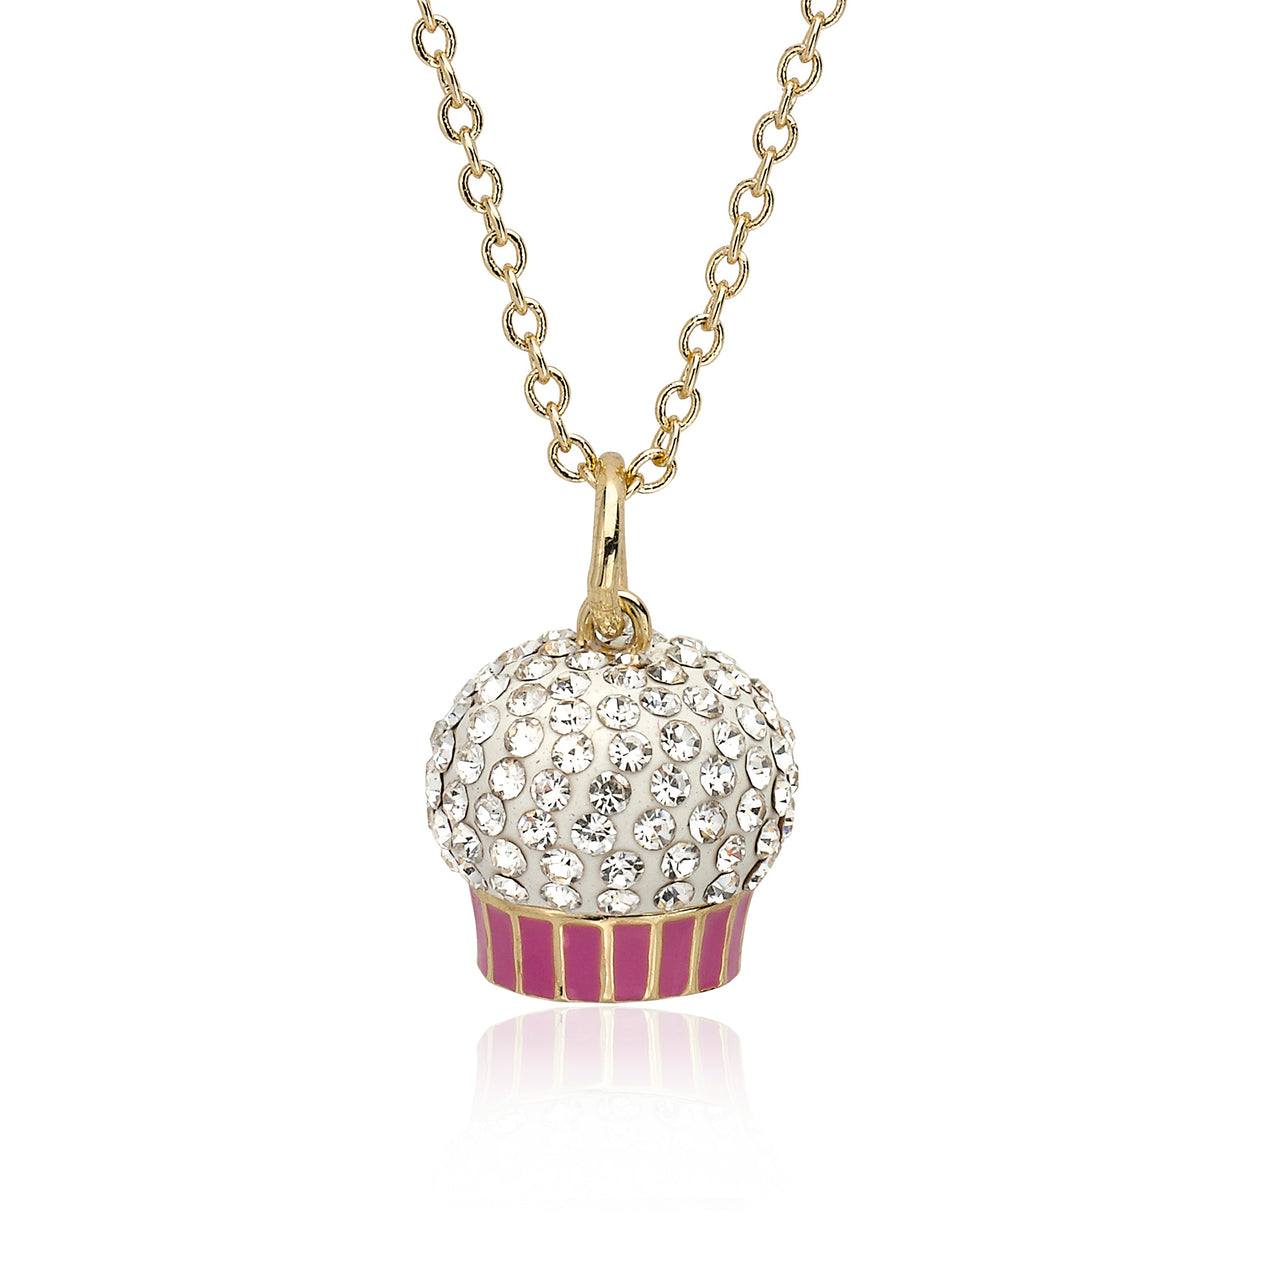 Sparkle Sweet Crystal Cupcake Necklace 3